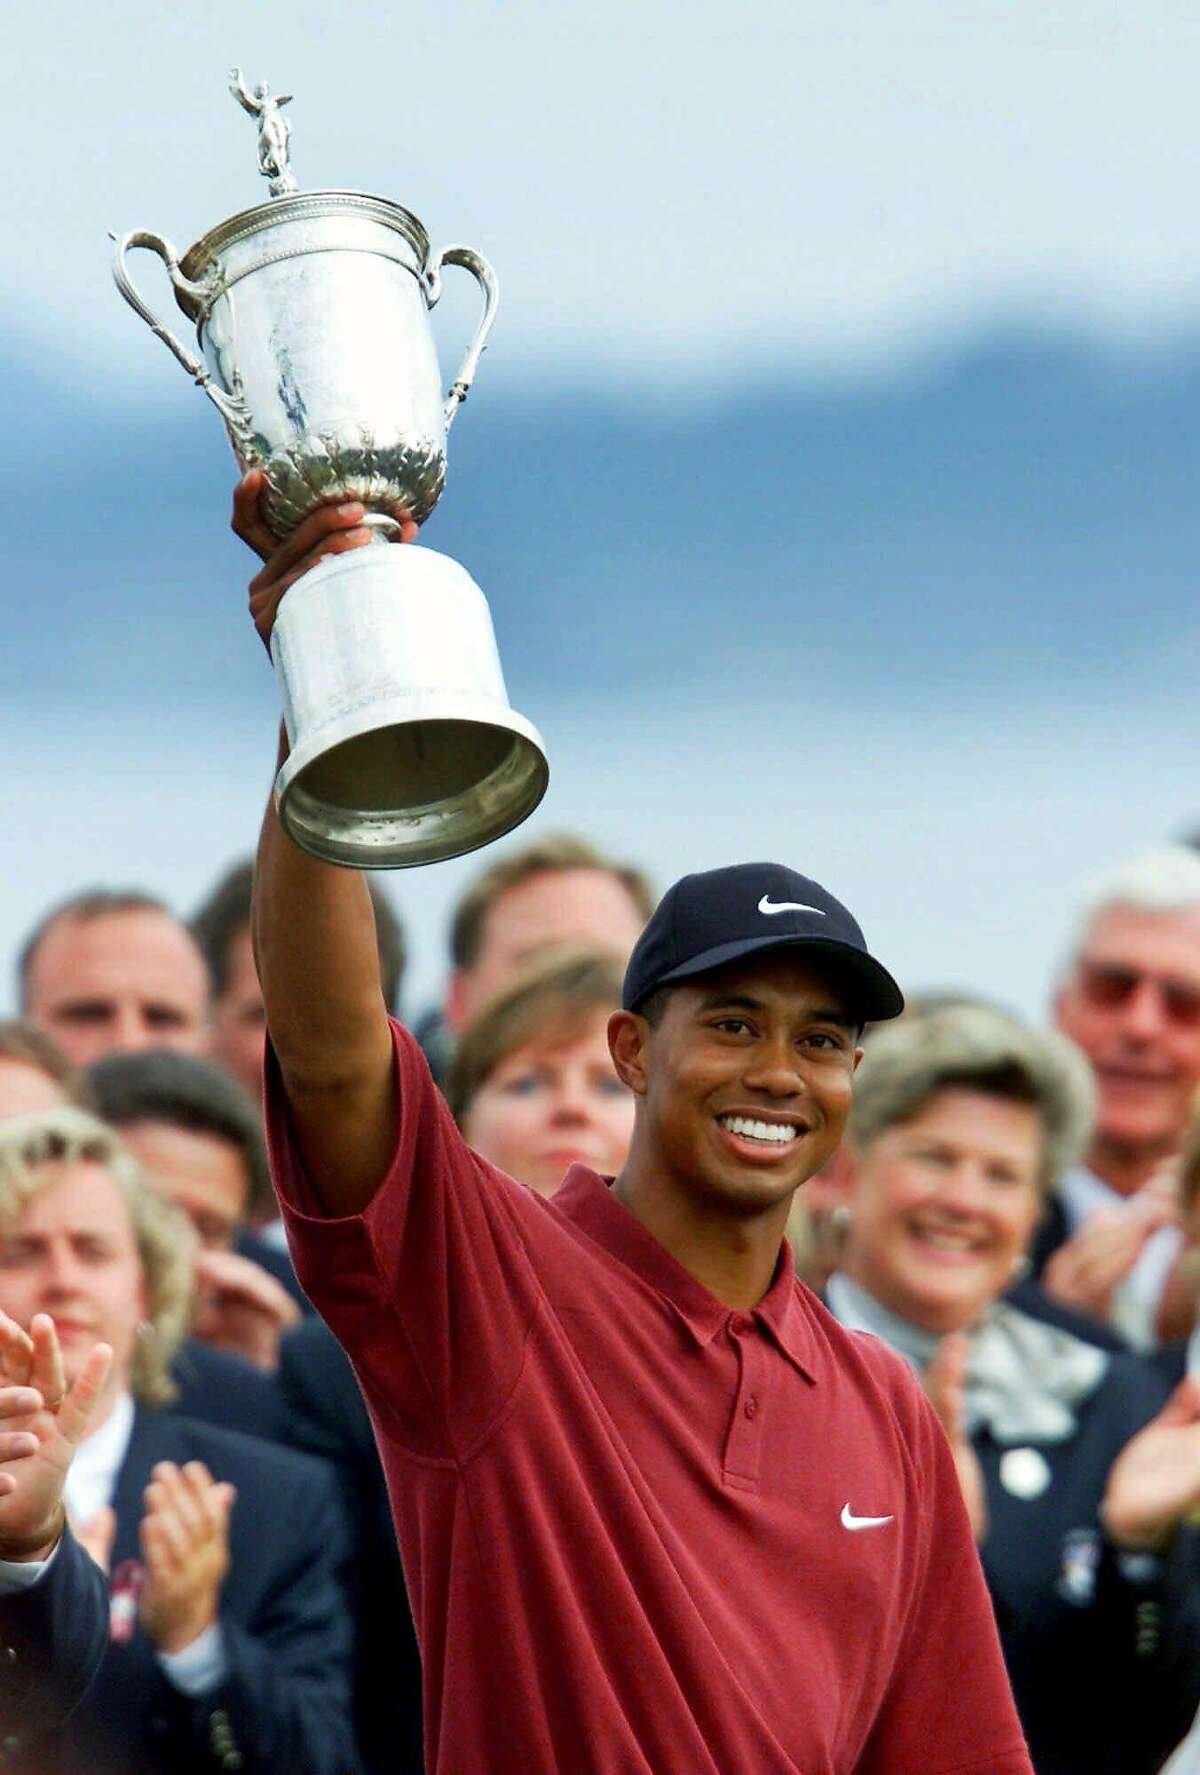 FILE - In this June 18, 2000, file photo, Tiger Woods holds up the trophy after winning the 100th U.S. Open Golf Championship at the Pebble Beach Golf Links in Pebble Beach, Calif. His 15-shot victory in the U.S. Open at Pebble Beach was the most dominant in 140 years of major championships. (AP Photo/Eric Risberg, File0